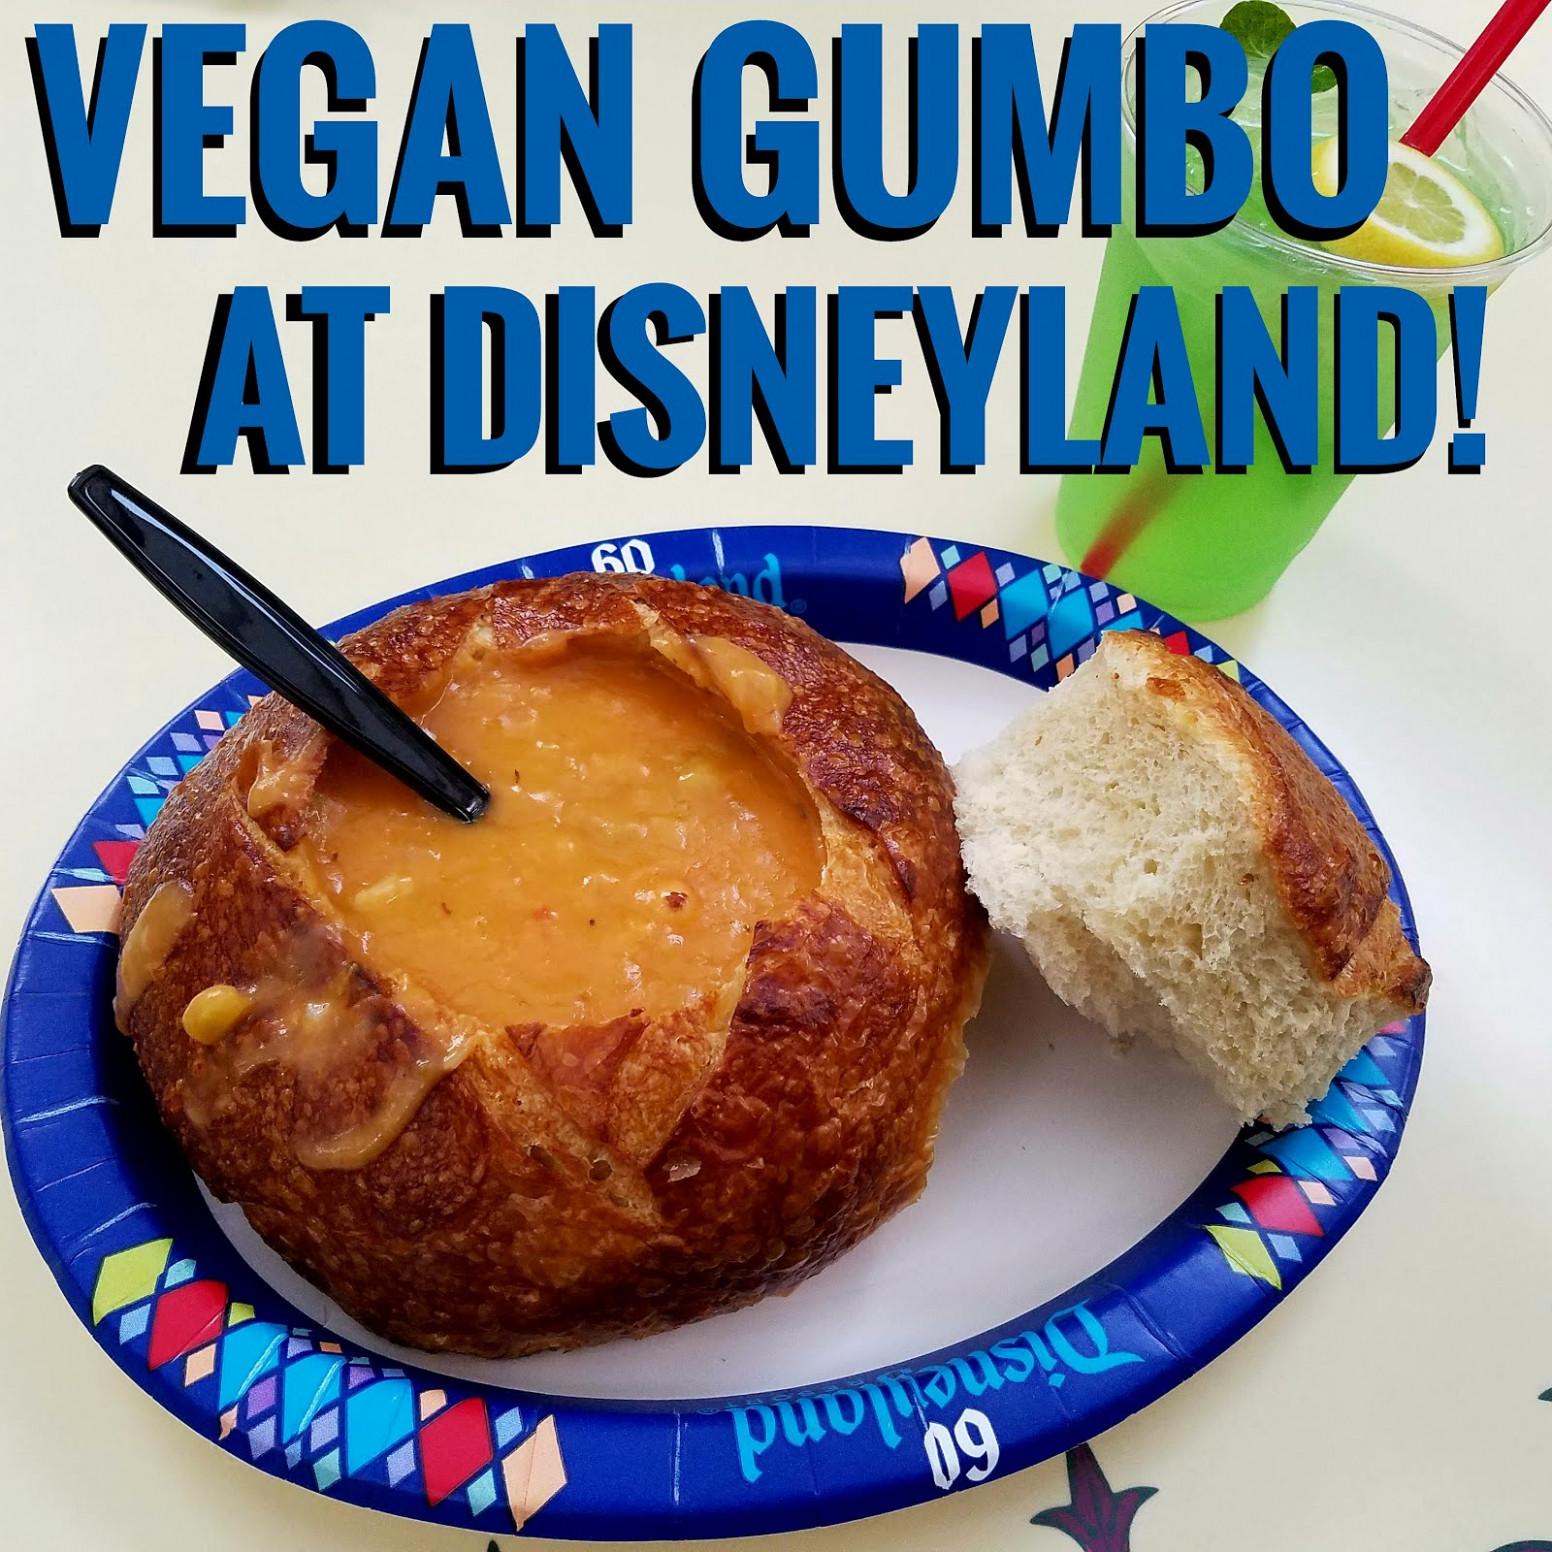 Vegan Gumbo at Disneyland! - recipe vegetarian gumbo